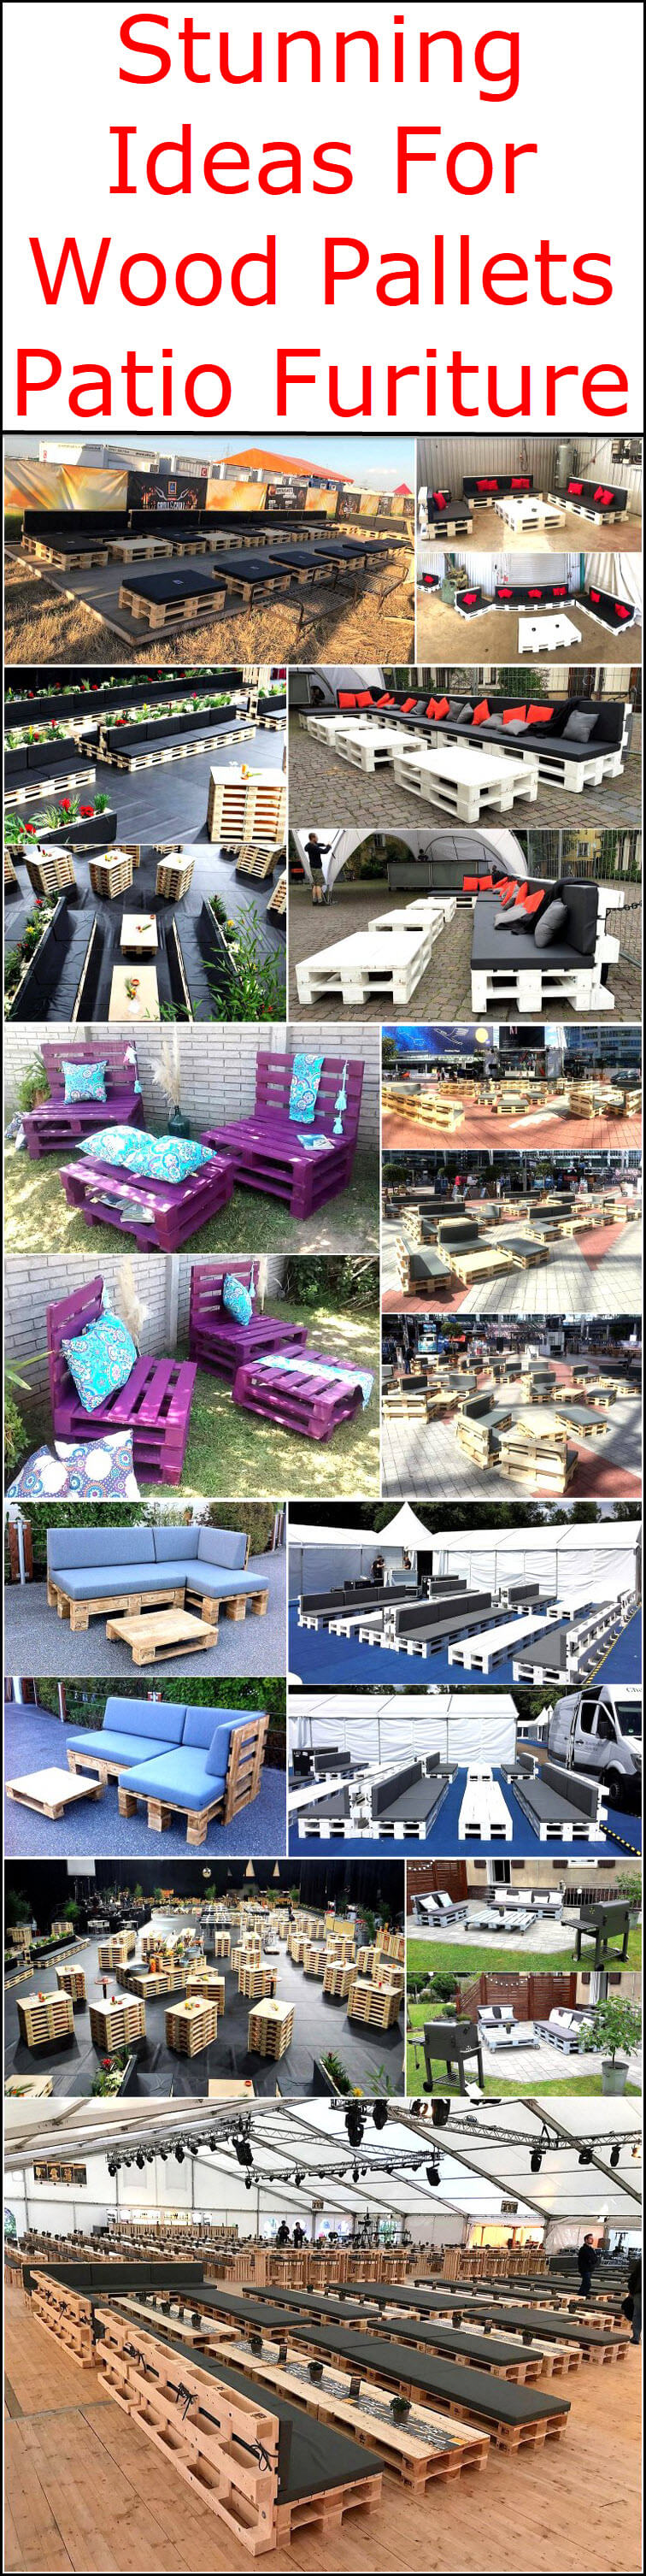 Stunning Ideas For Wood Pallets Reusing Pallet